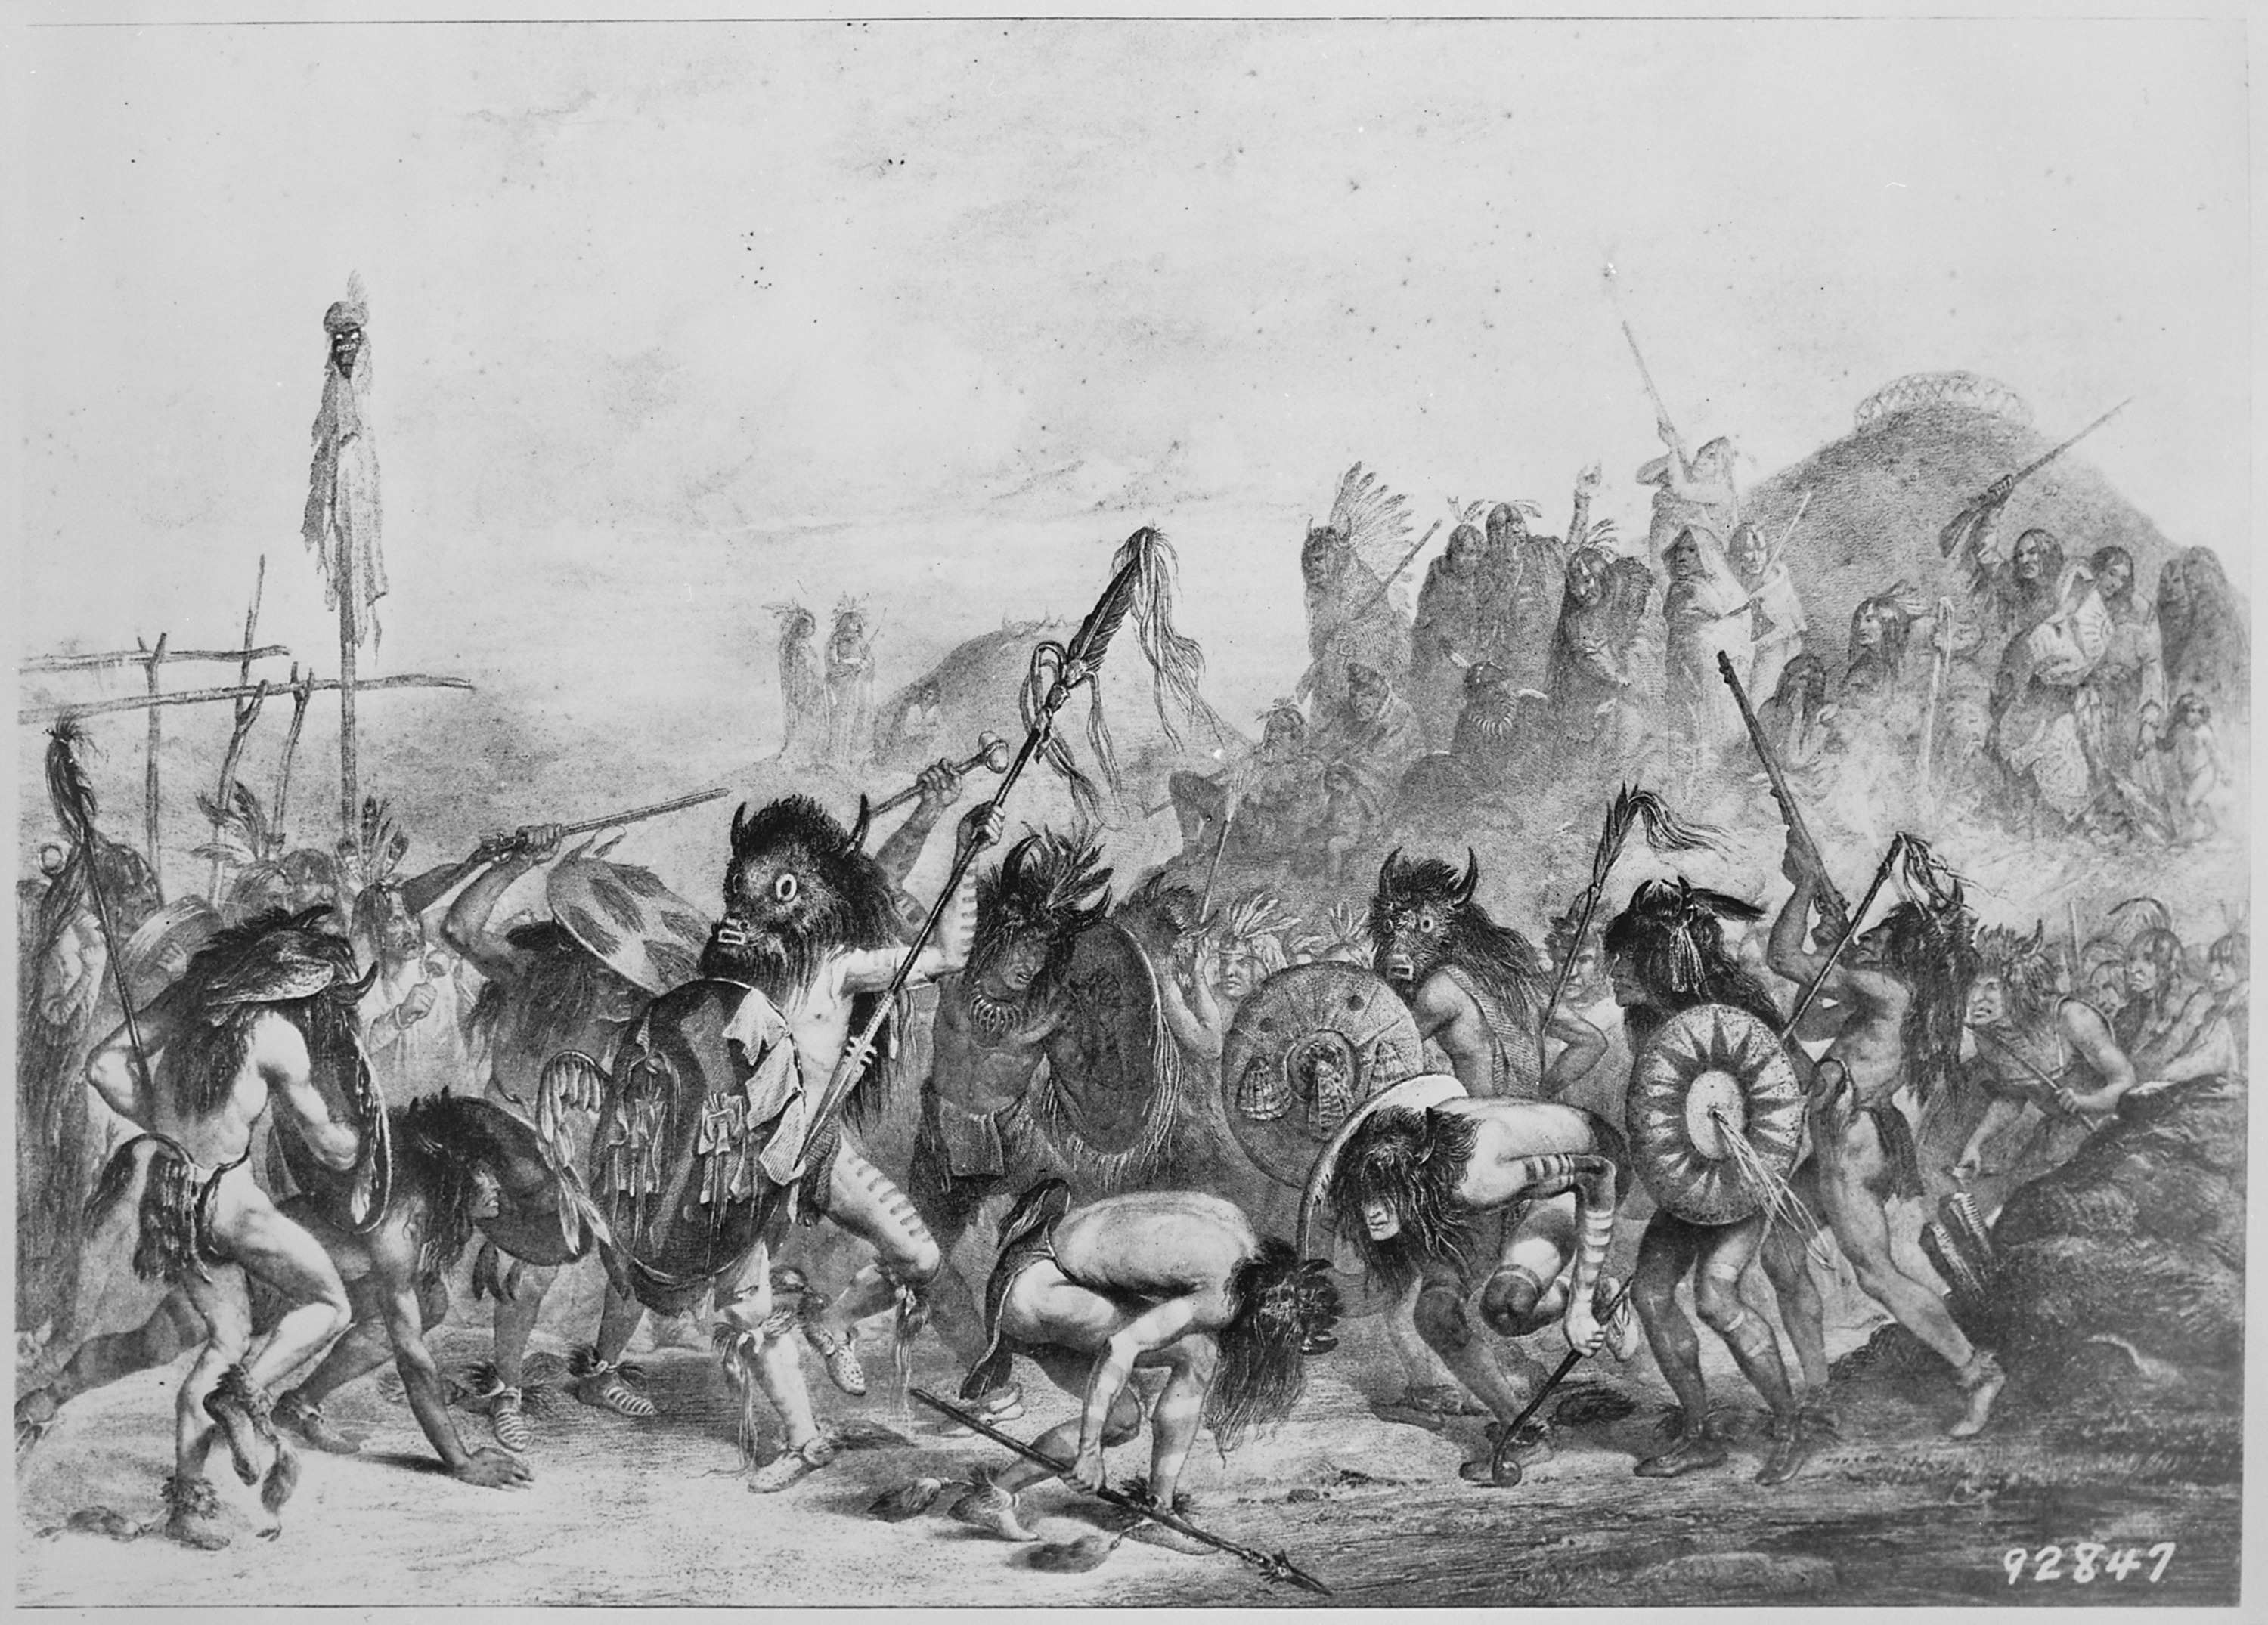 File:Buffalo dance of the Mandans, 1833 - 1834 - NARA - 530978.